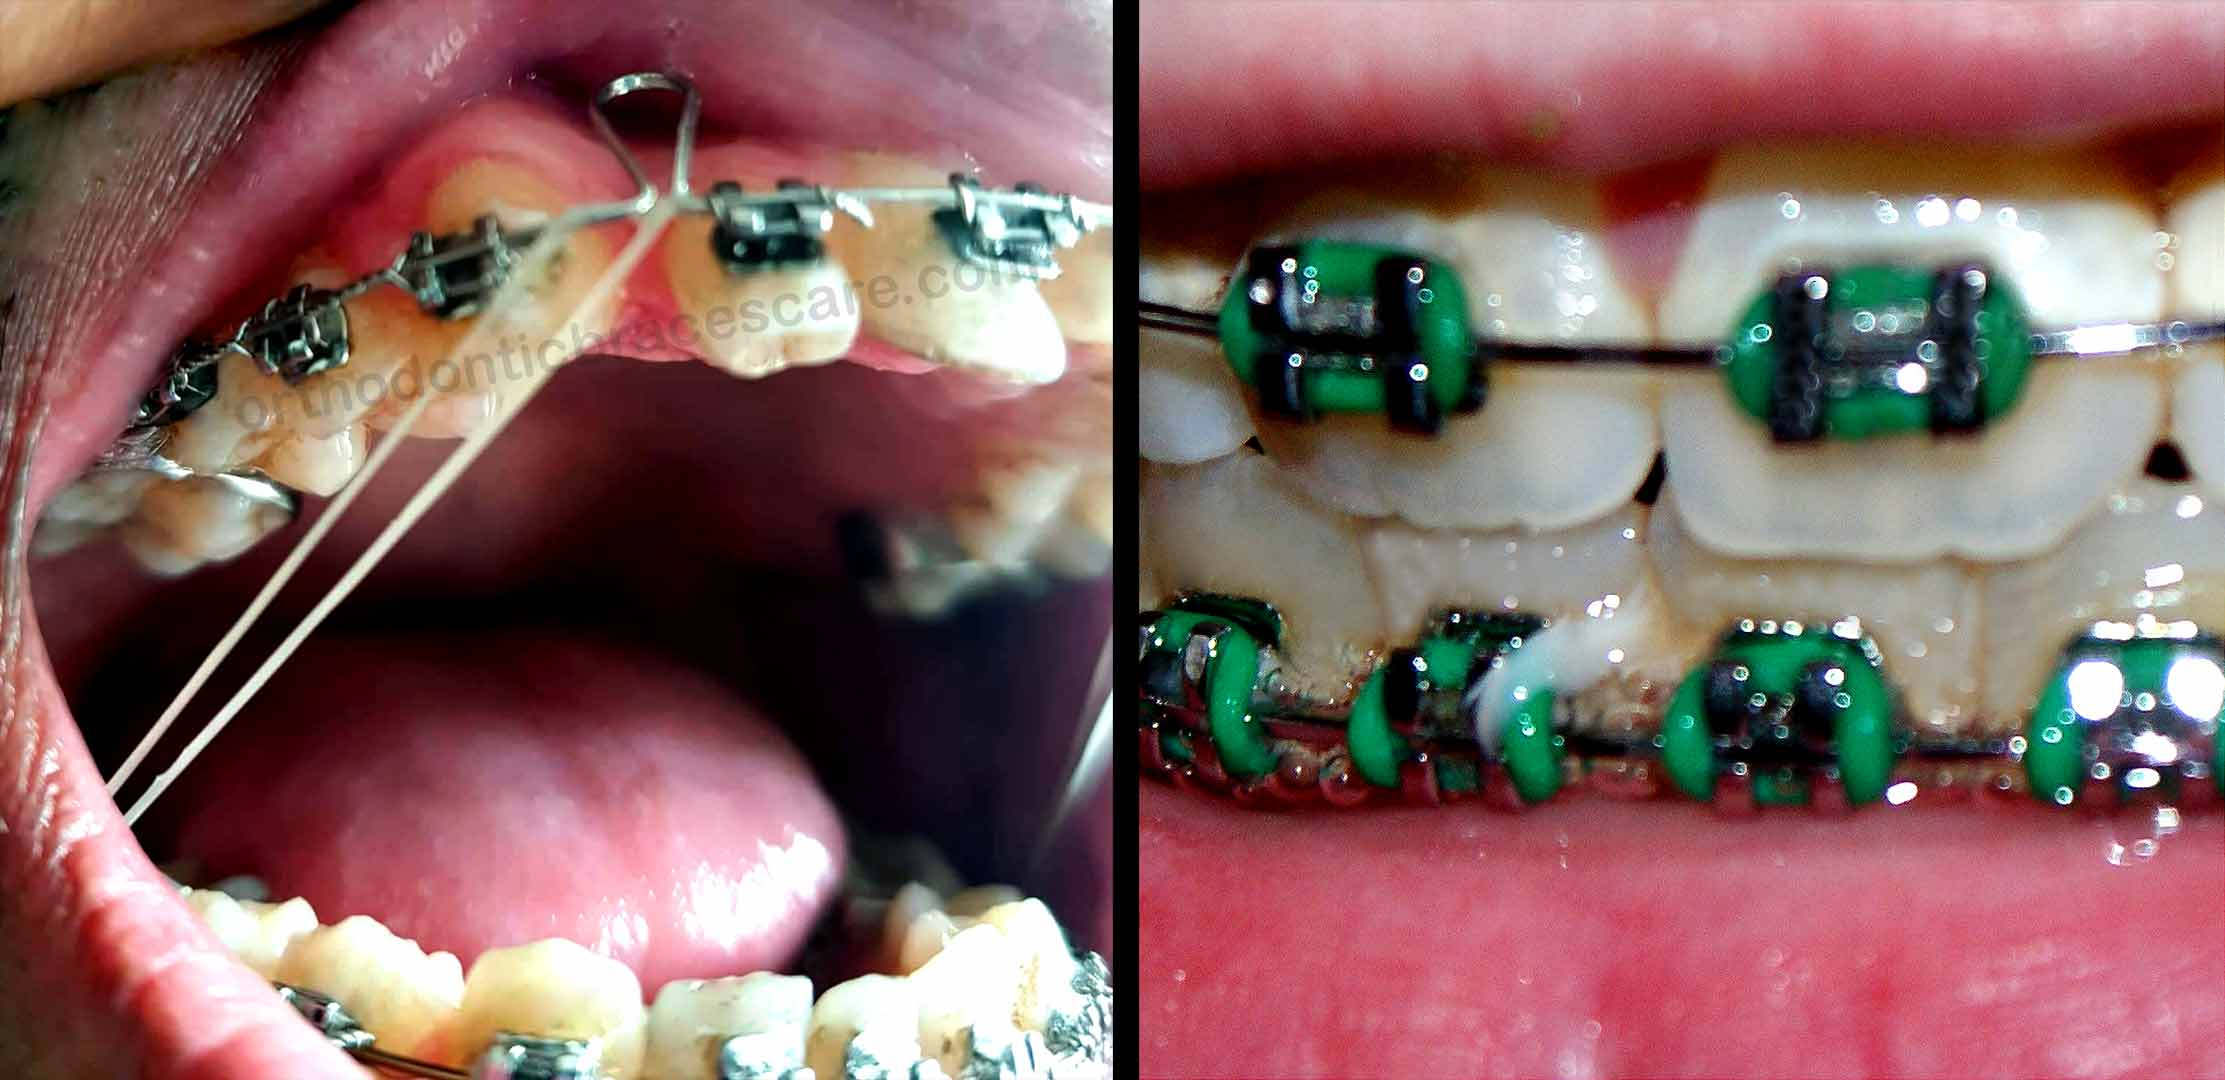 How Long Do You Have To Wear Rubber Bands For Braces Orthodontic